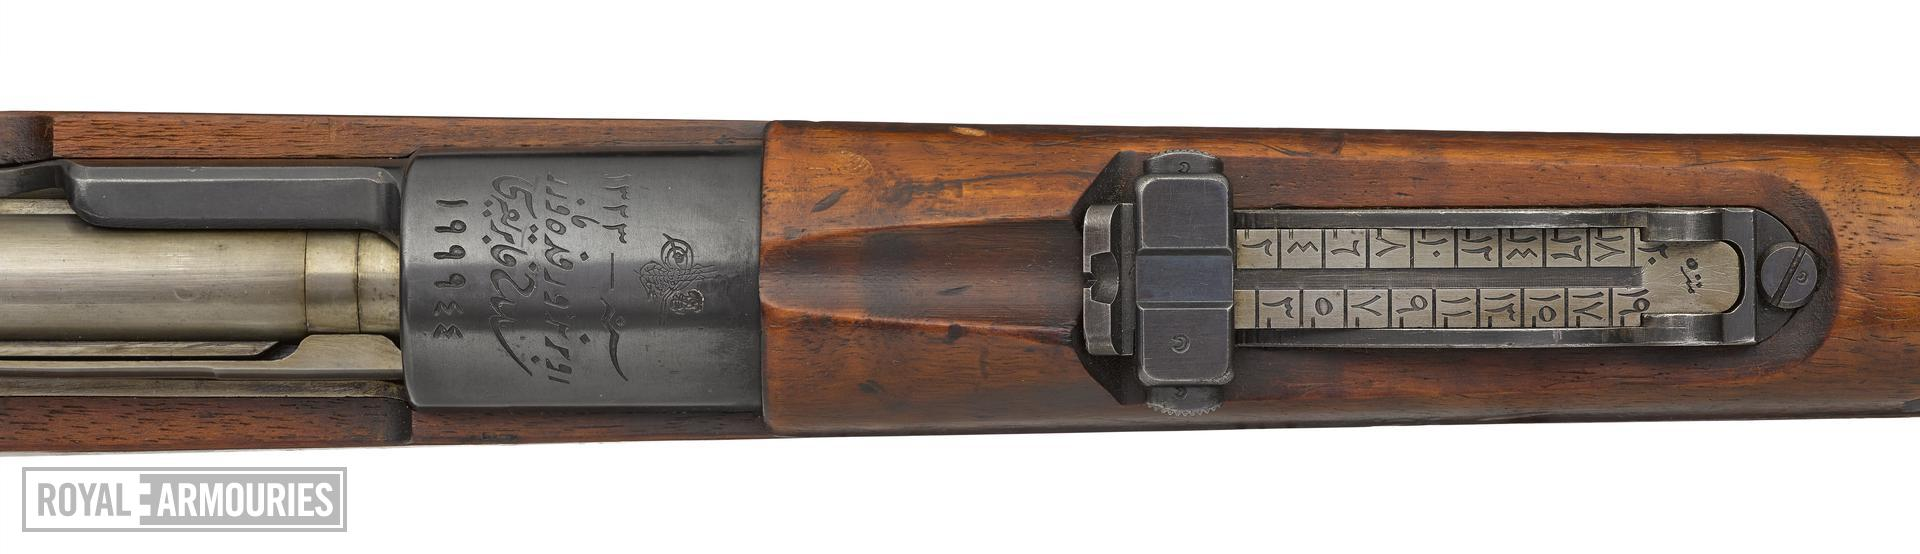 Mauser Model 1903 centrefire bolt action rifle, Turkey, about 1903